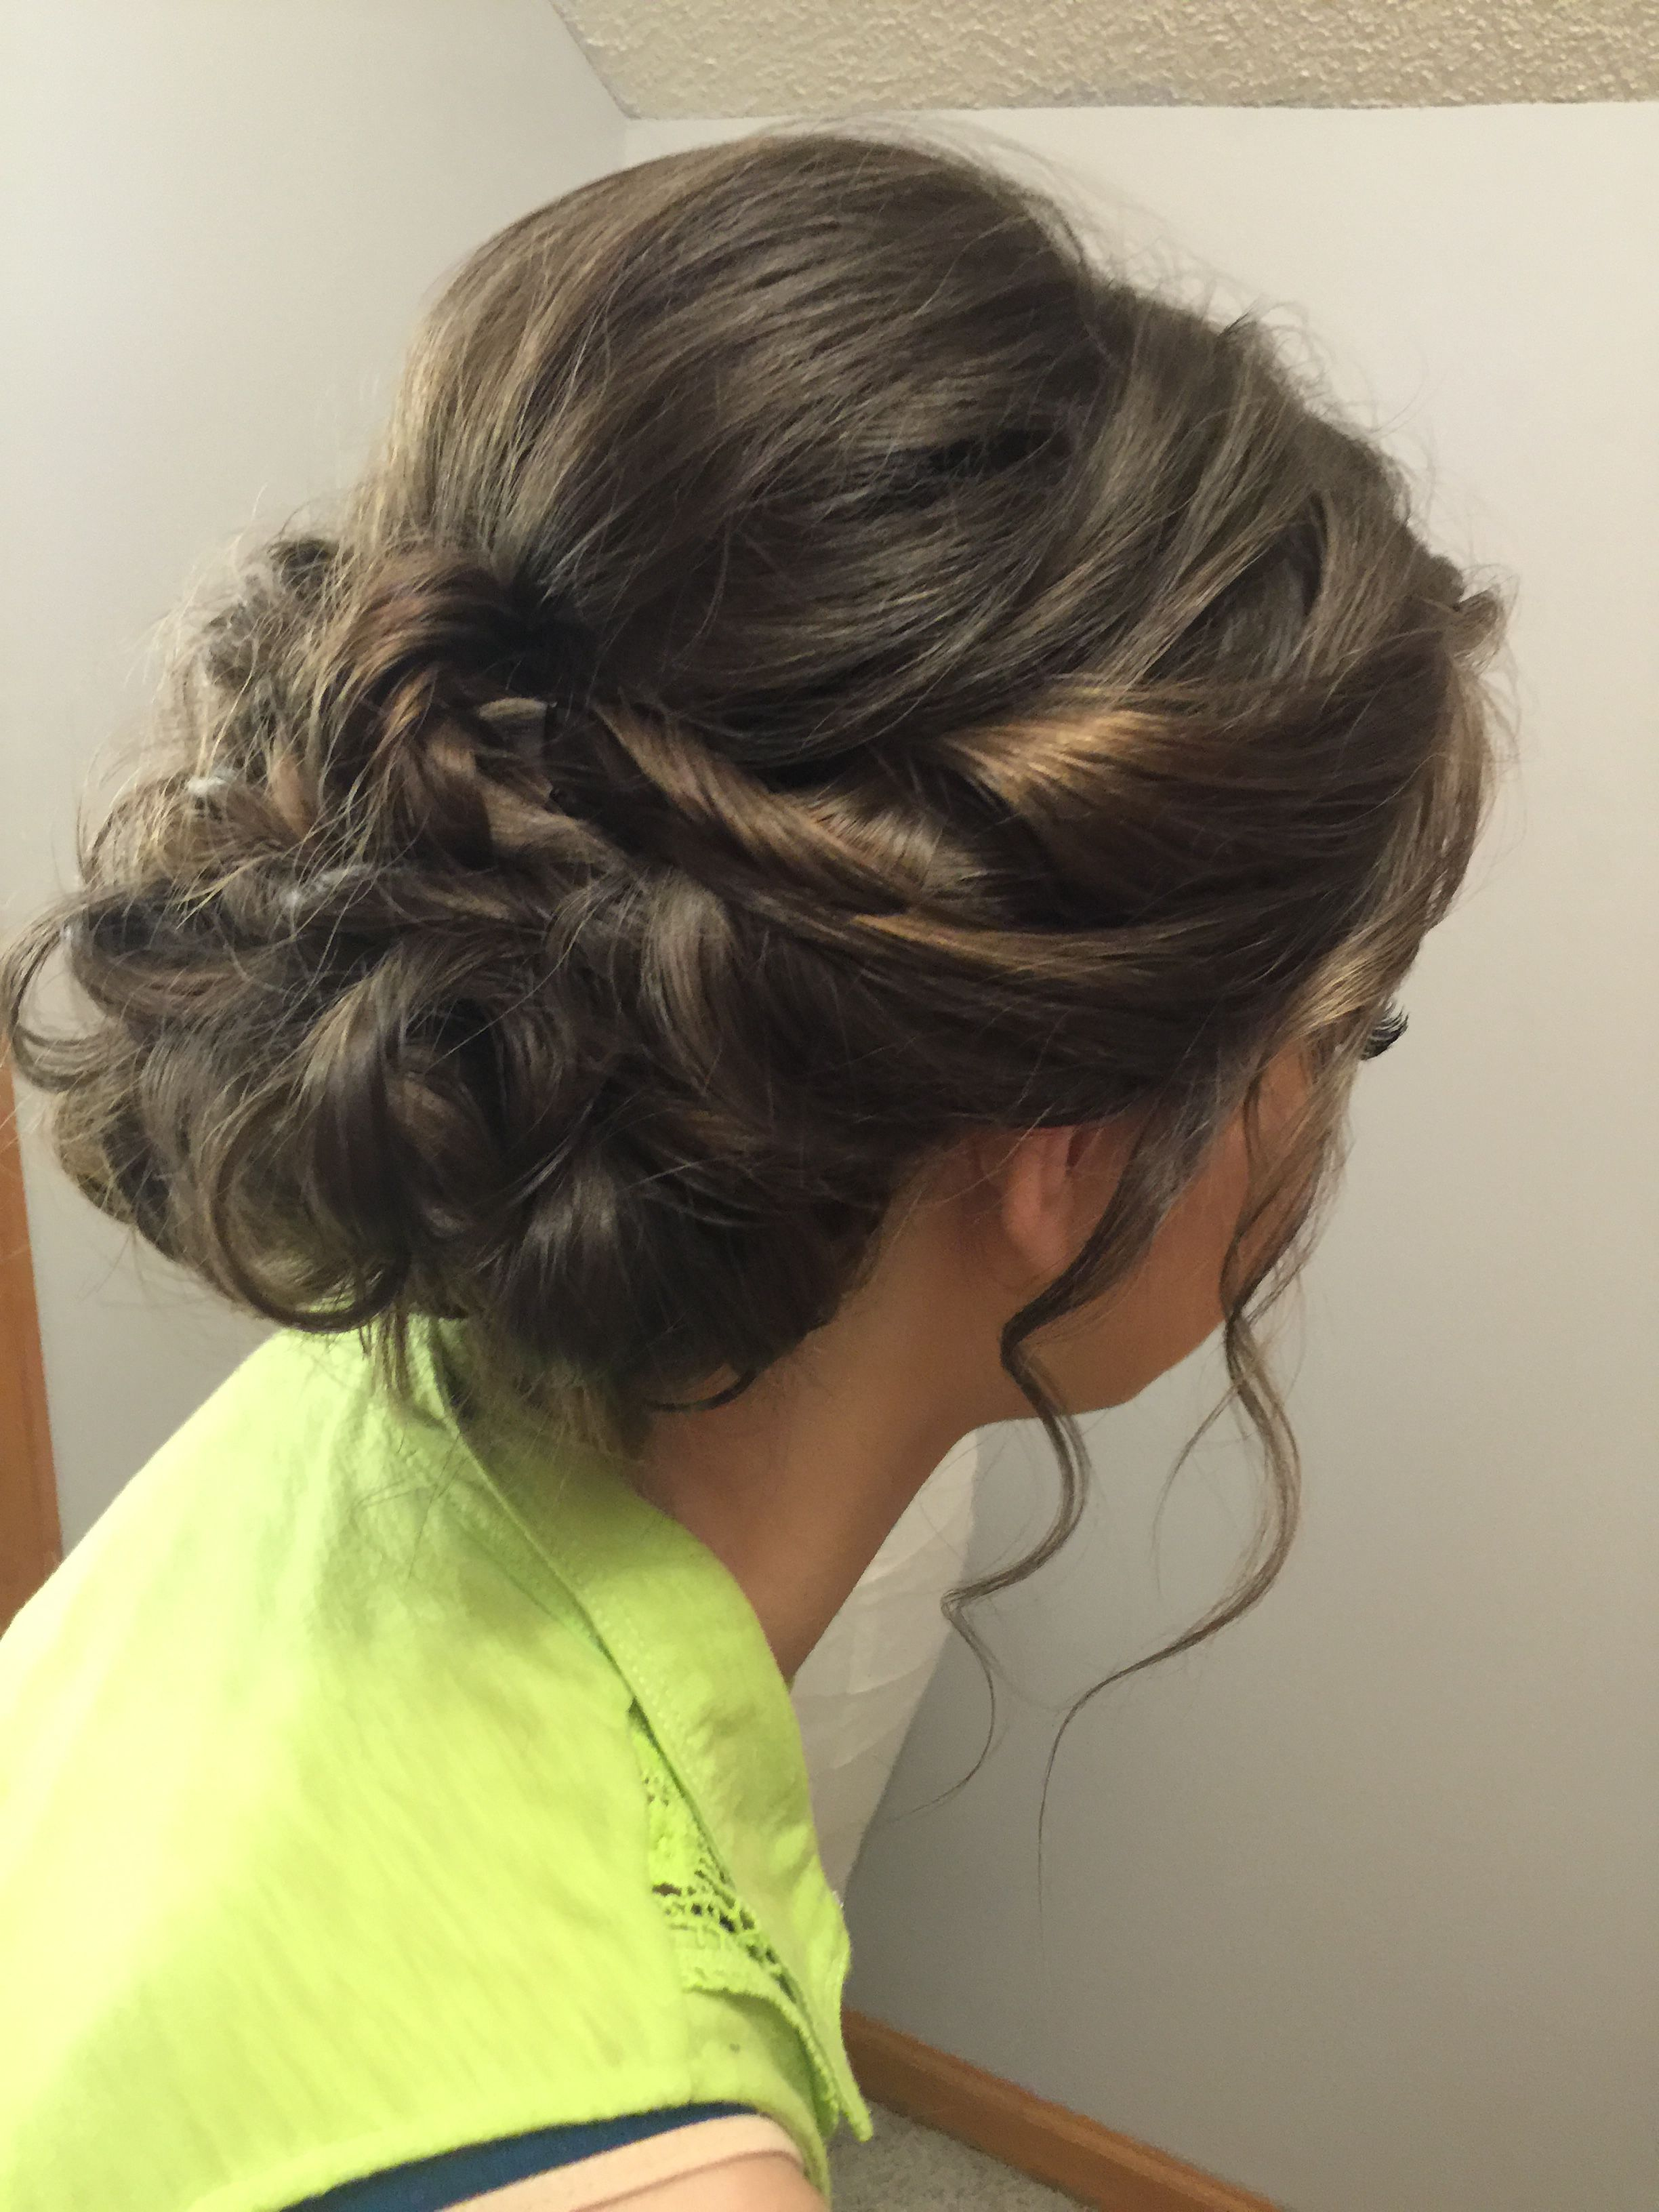 Elegant Prom hair with twists and loose curls.